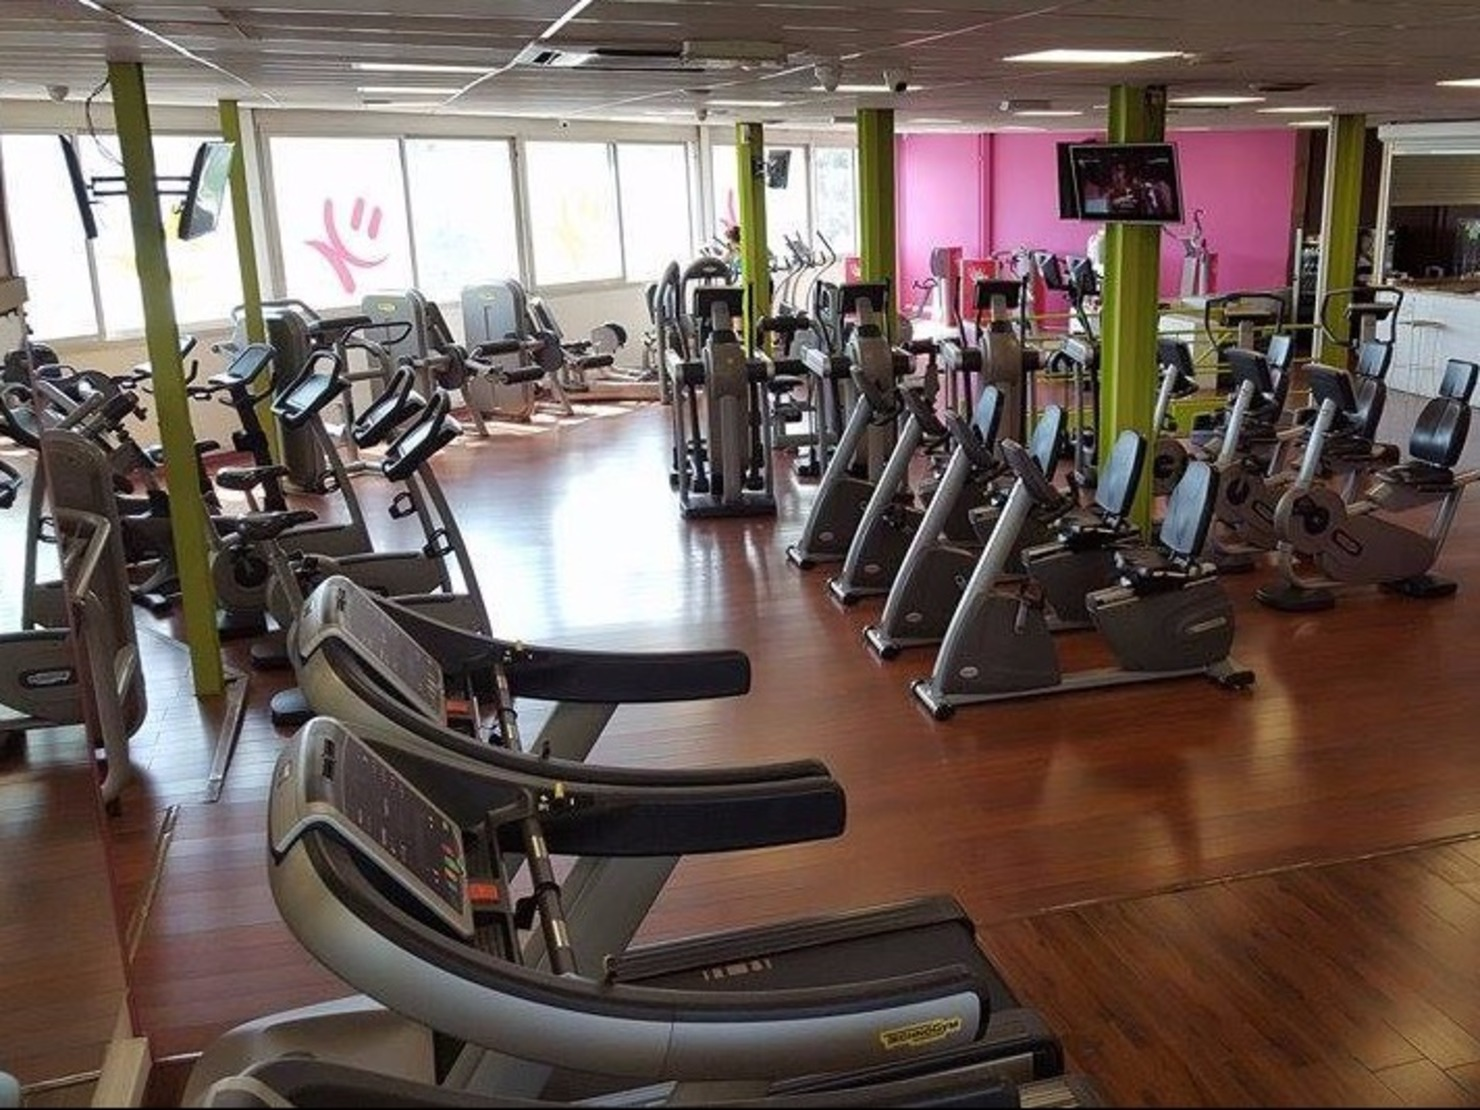 le centre fitness club grasse tarifs avis horaires essai gratuit. Black Bedroom Furniture Sets. Home Design Ideas